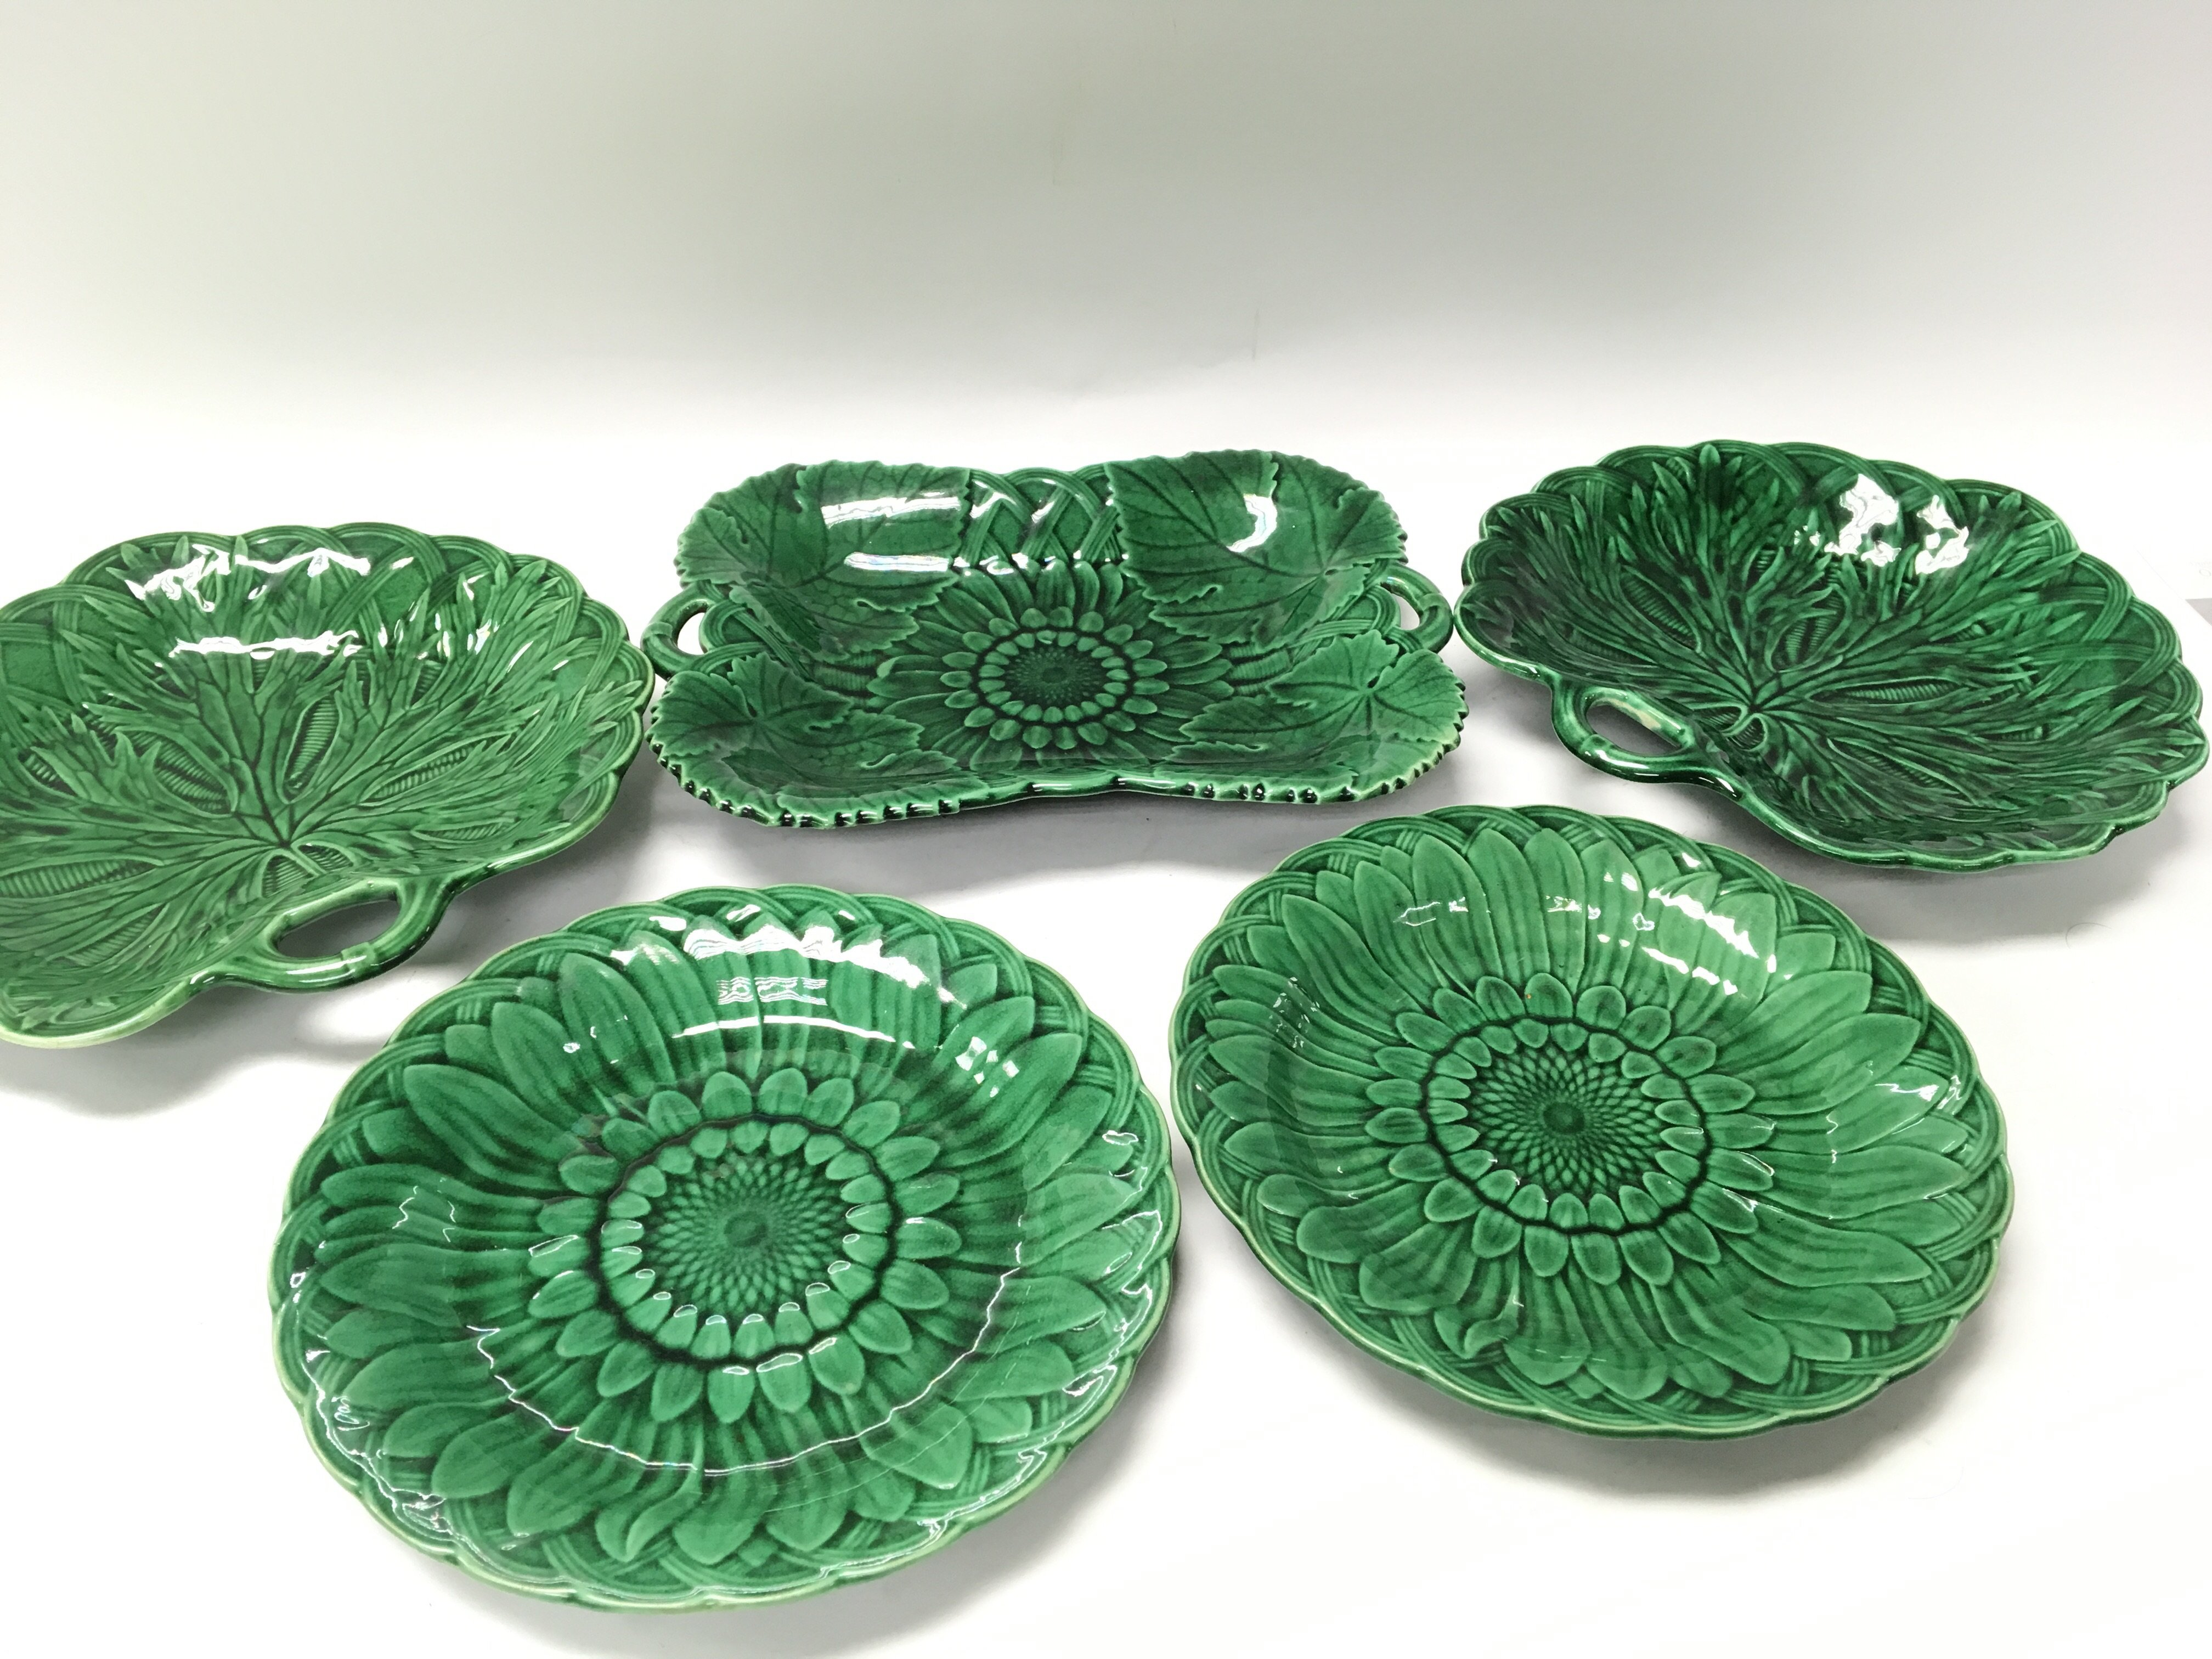 Five Victorian Wedgwood Majolica plates with shape